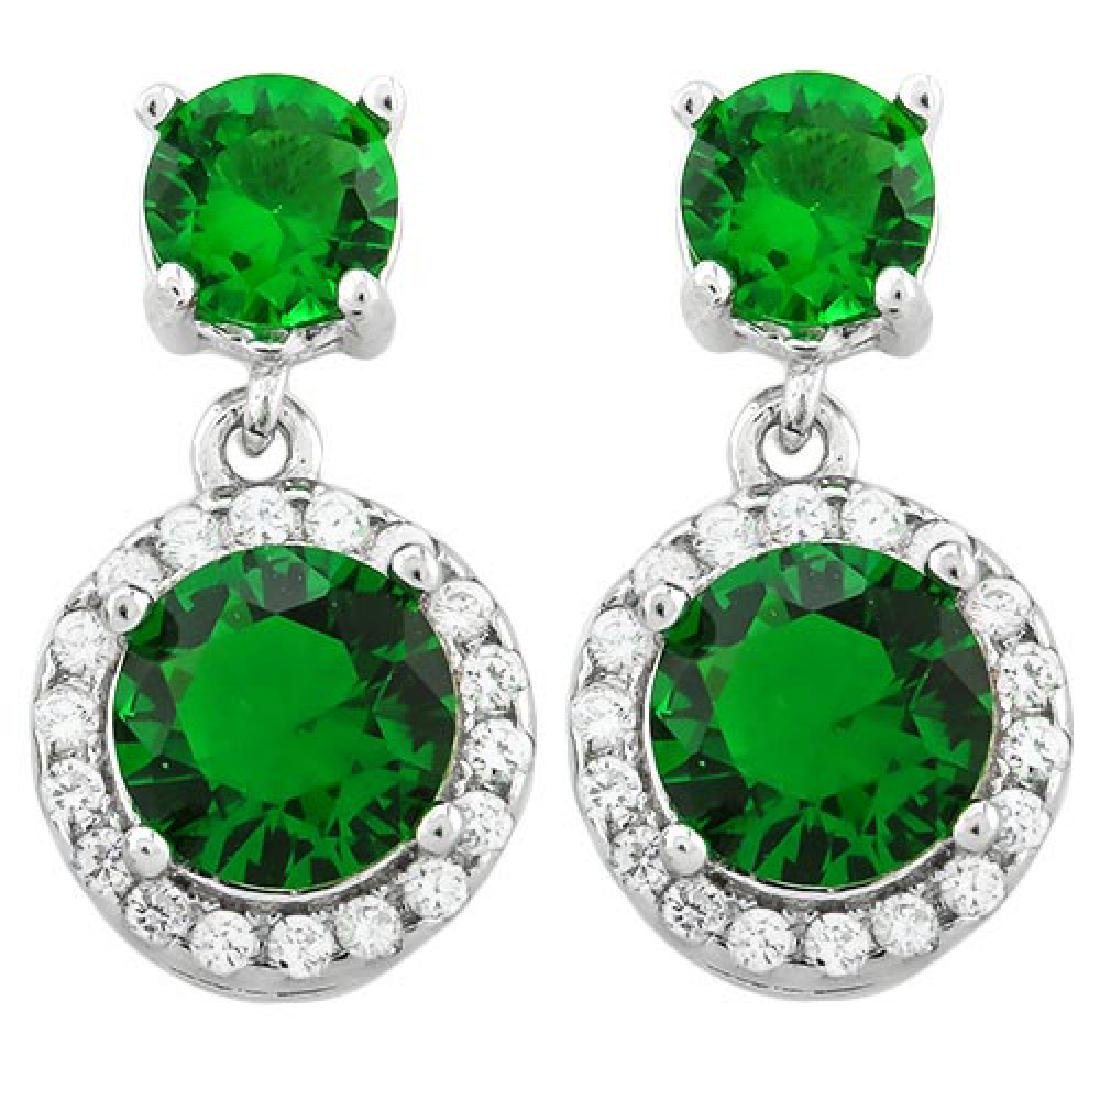 CREATED EMERALD 925 STERLING SILVER EARRINGS